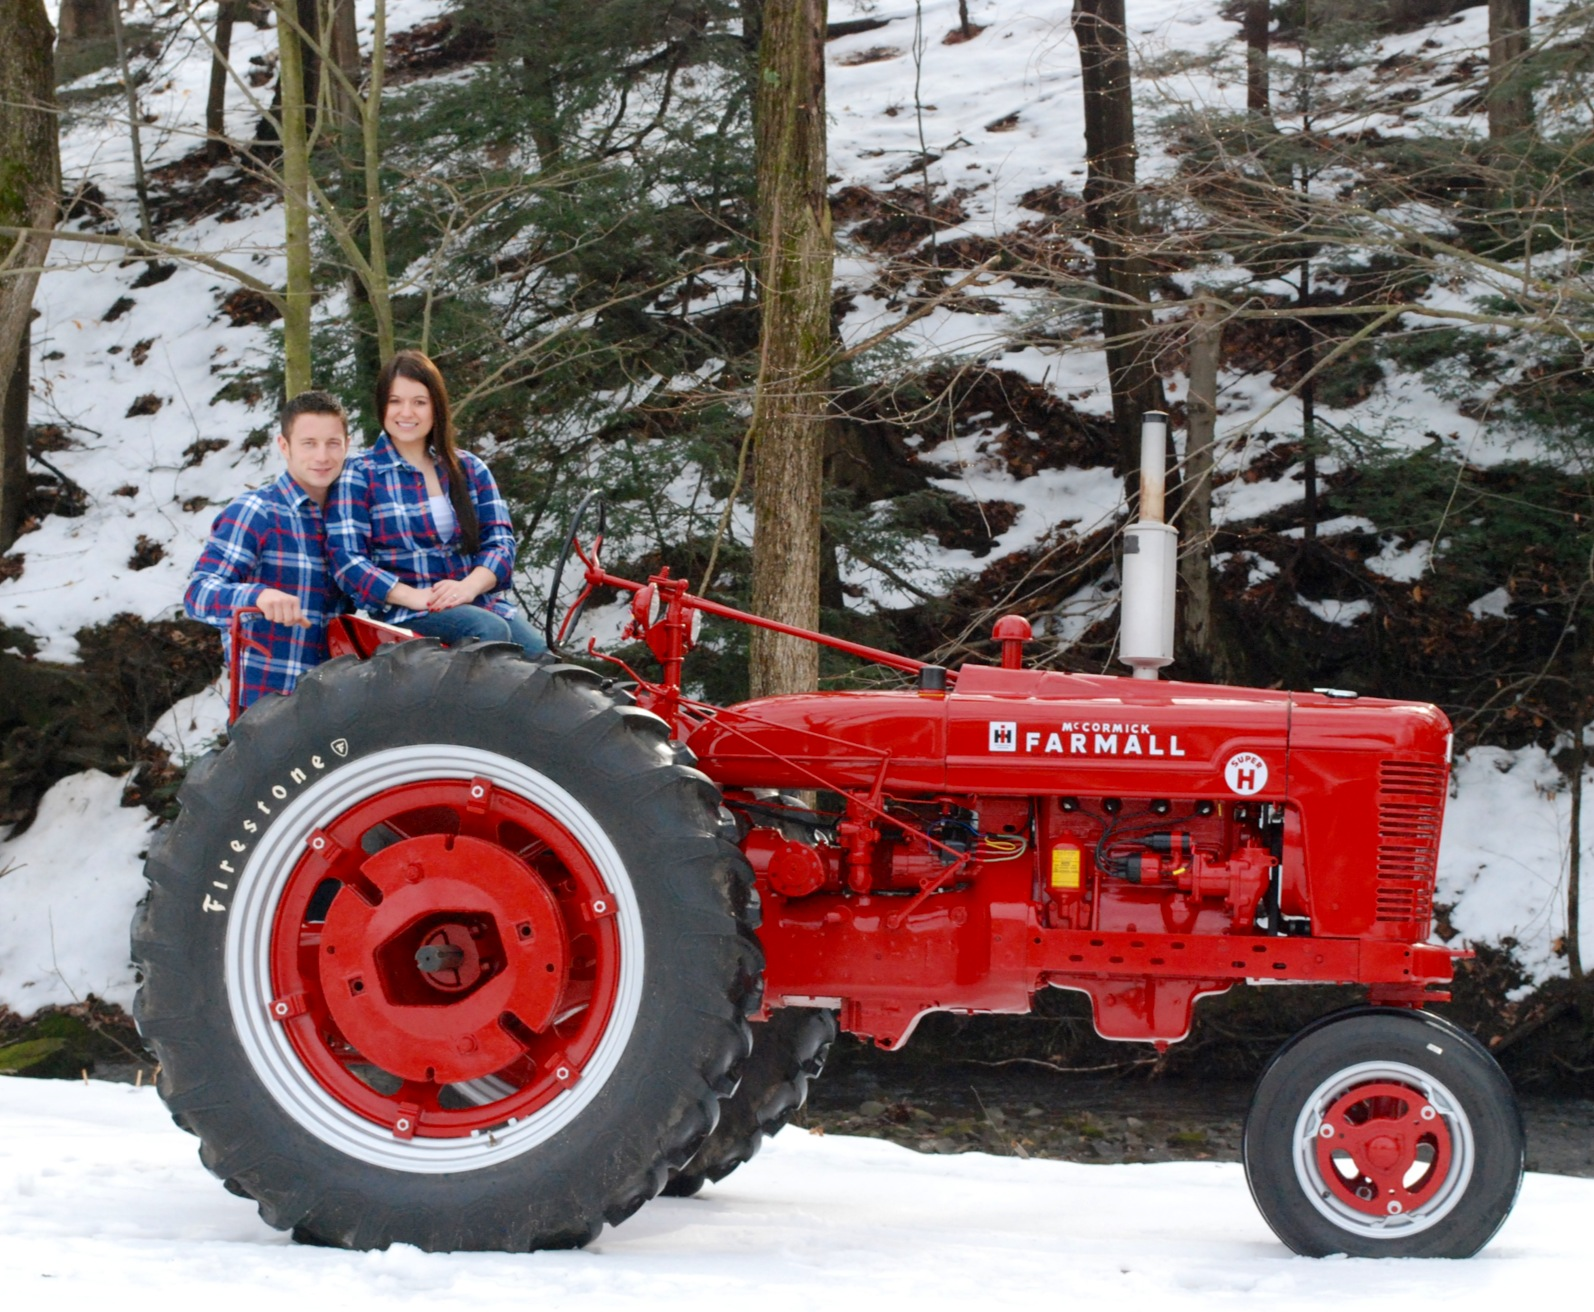 Farm All Tractor : Tractor story farmall super h antique